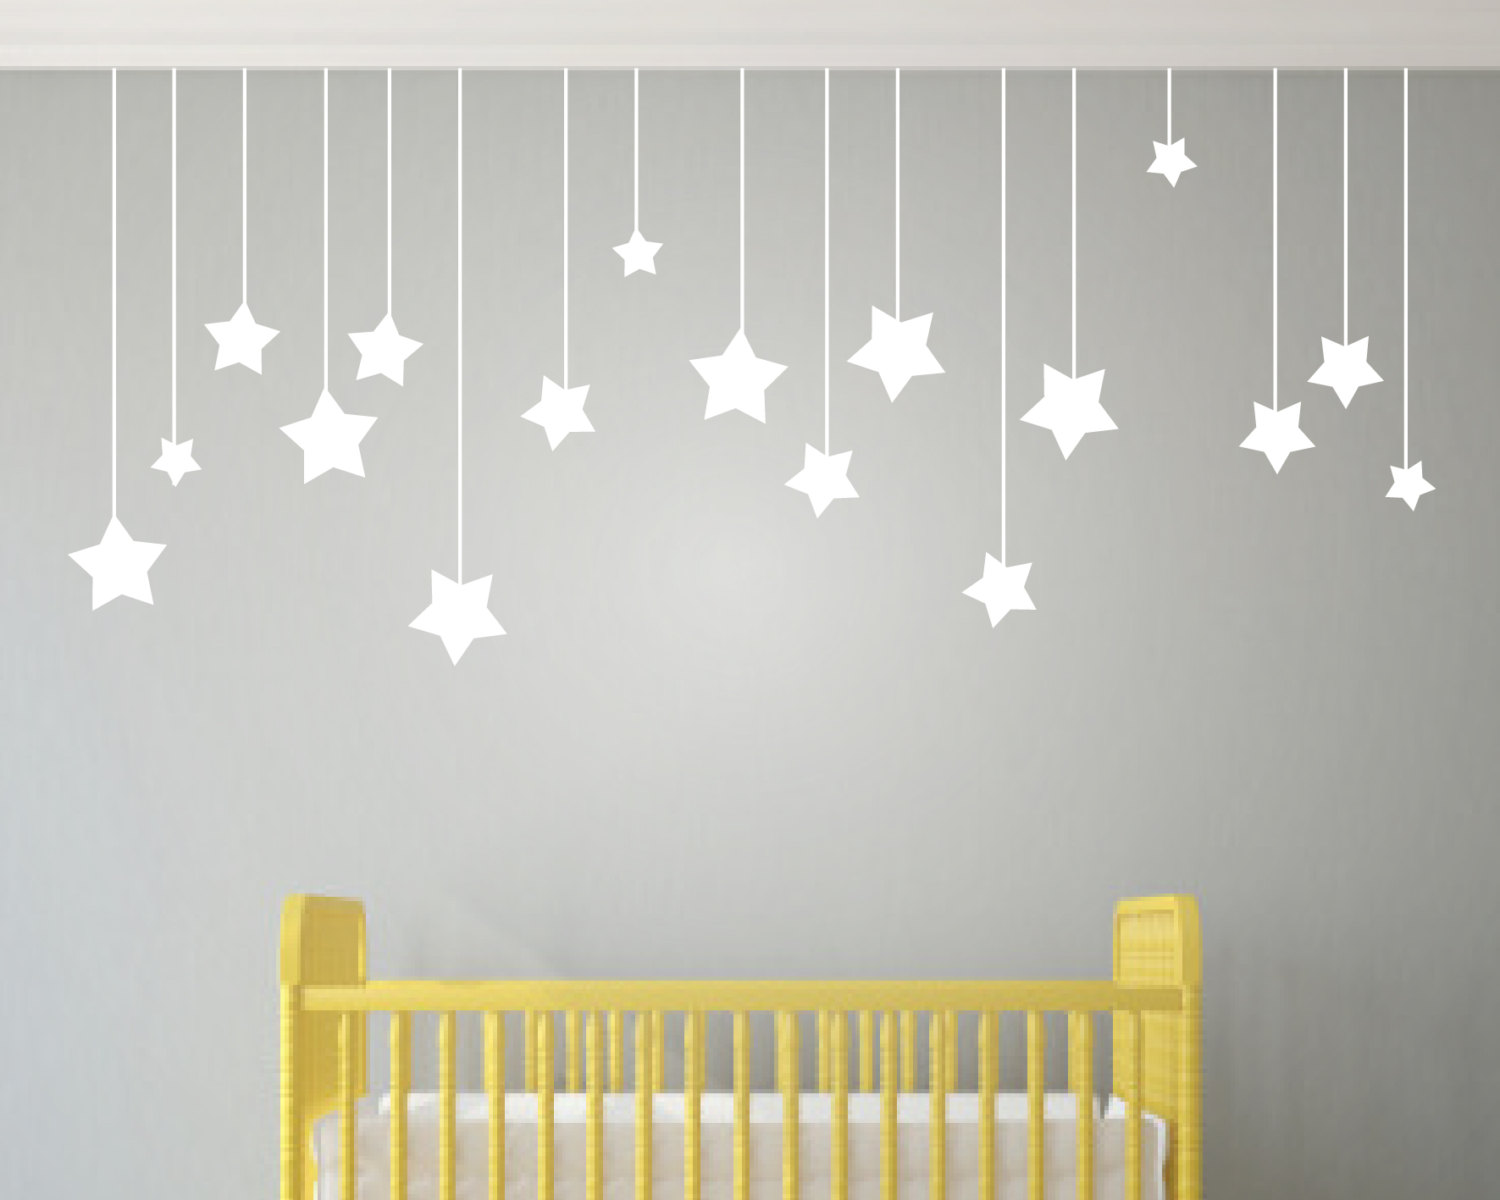 Wall Art Stickers For Nursery : Childrens wall art nursery decor stickers